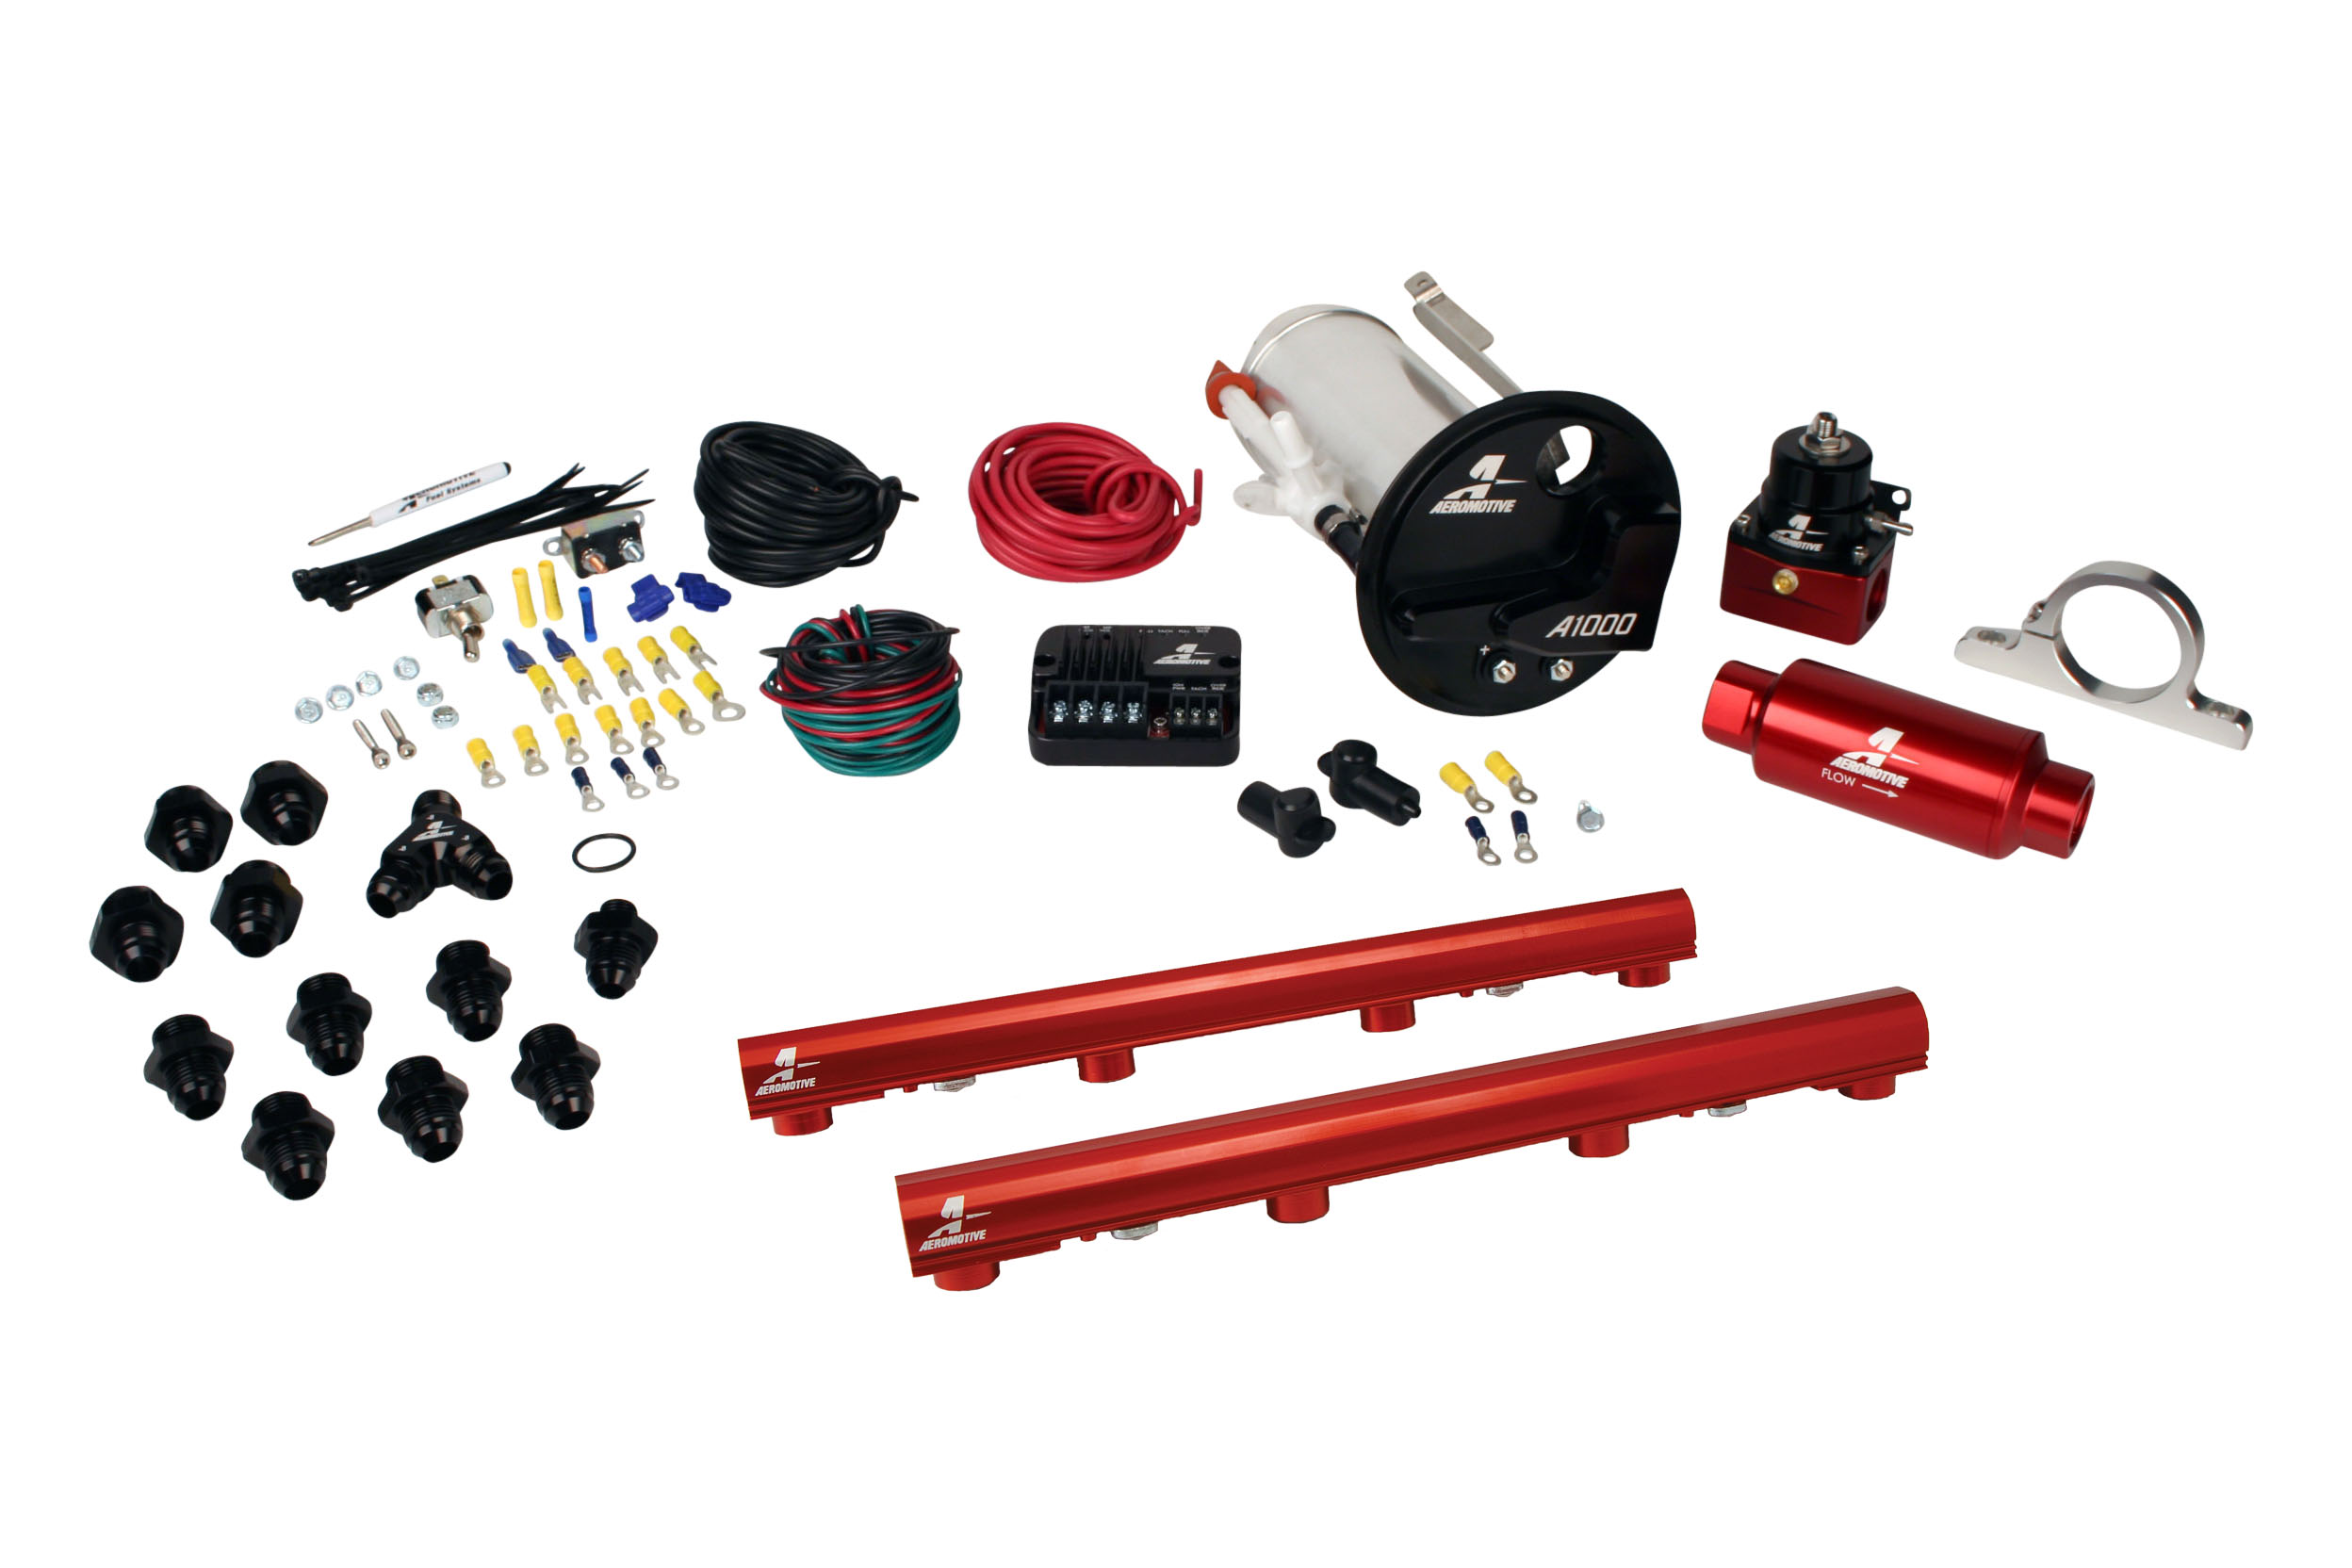 2007-2012 Ford Mustang Shelby GT500 Aeromotive Stealth A1000 Street Fuel System w/4.6L 3-V Fuel Rails